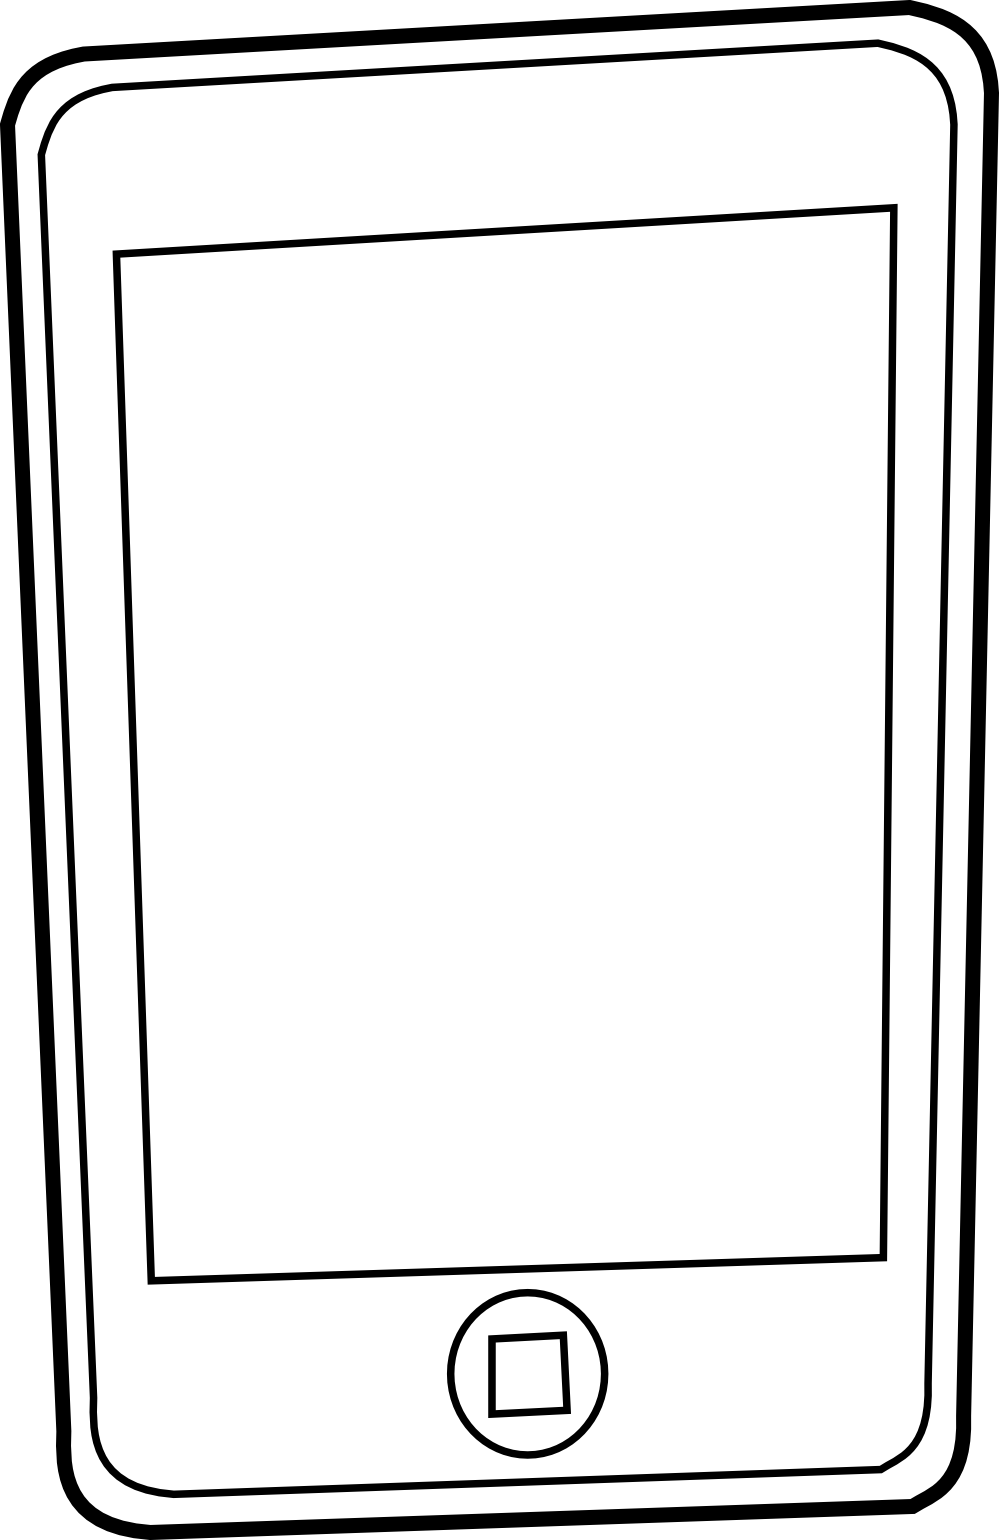 Iphone 4 coloring pages ~ Iphone Clipart Black And White | Clipart Panda - Free ...